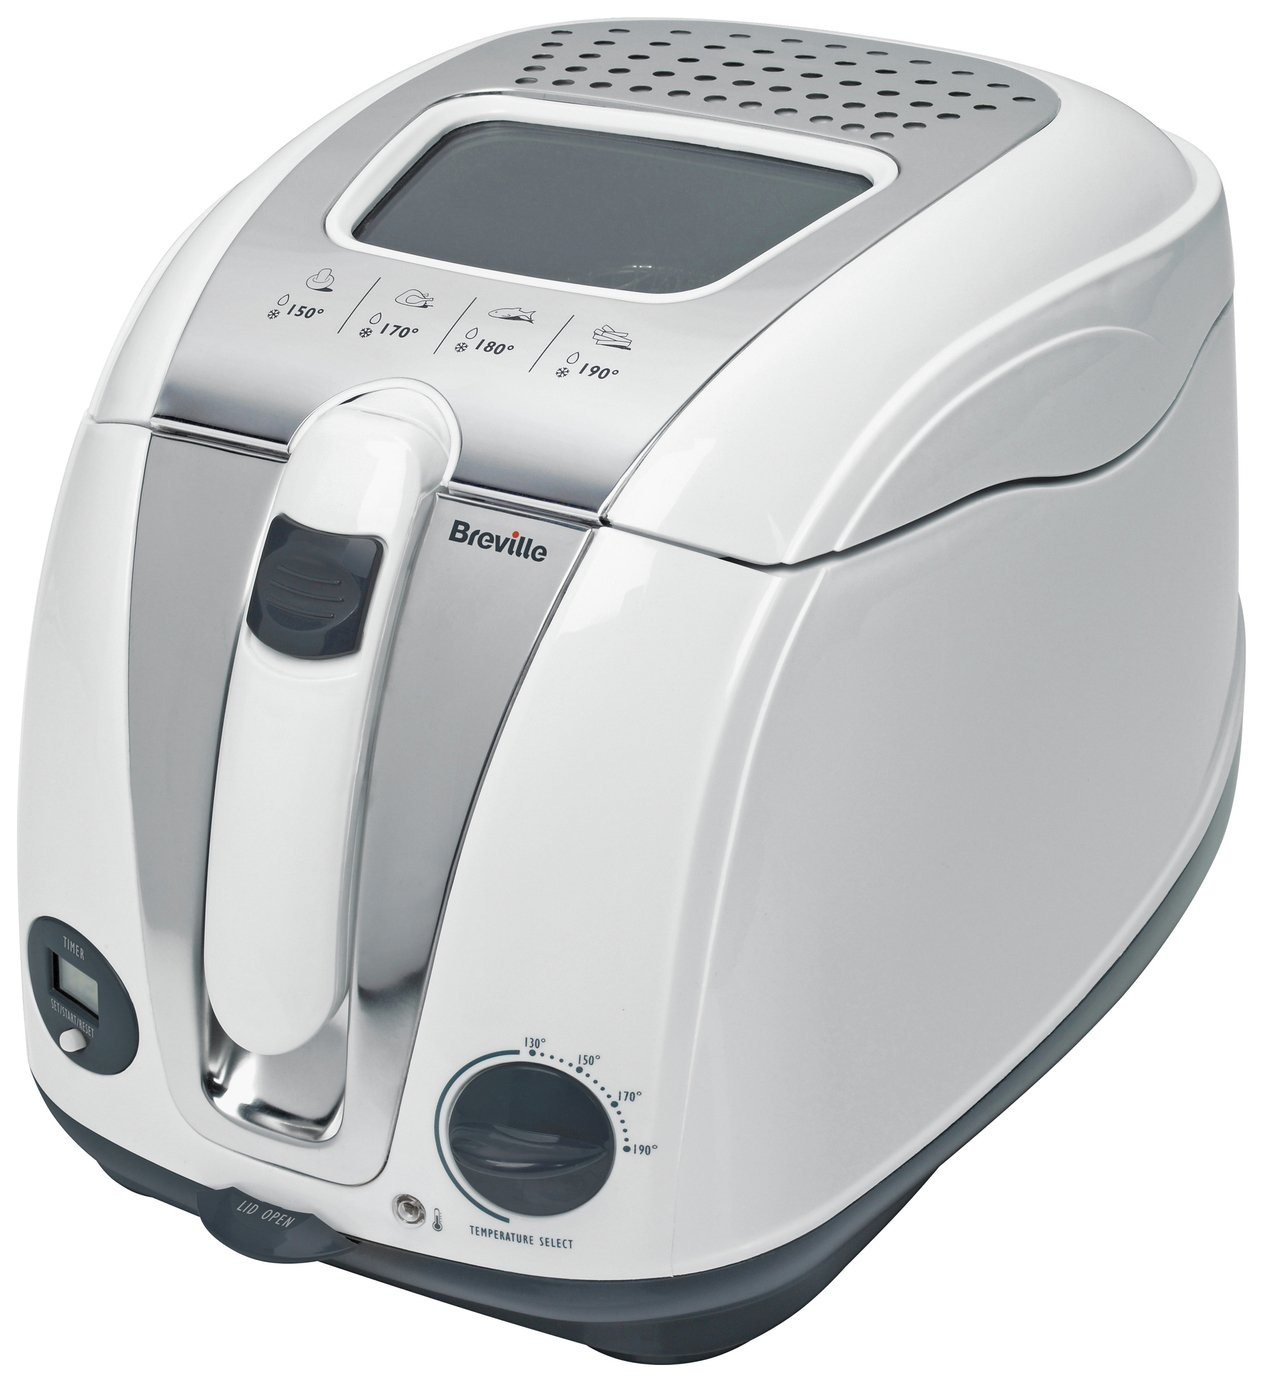 Image of Breville - VDF108 Digital - Fryer - White